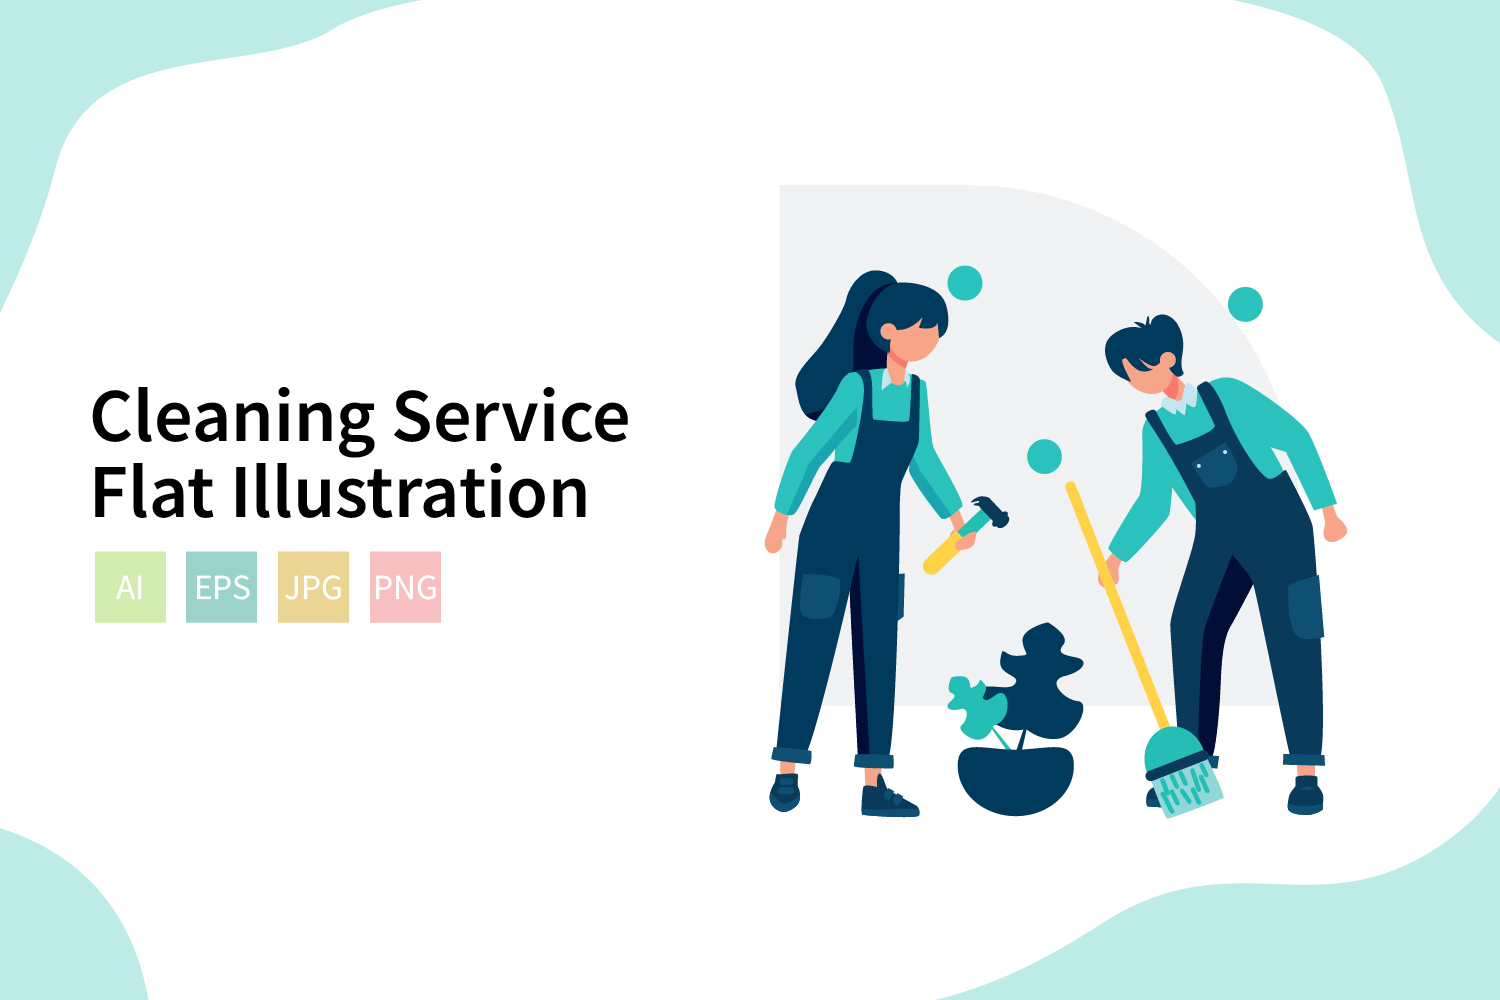 Download Free Cleaning Service Flat Illustration Graphic By Sixtwenty Studio Creative Fabrica for Cricut Explore, Silhouette and other cutting machines.